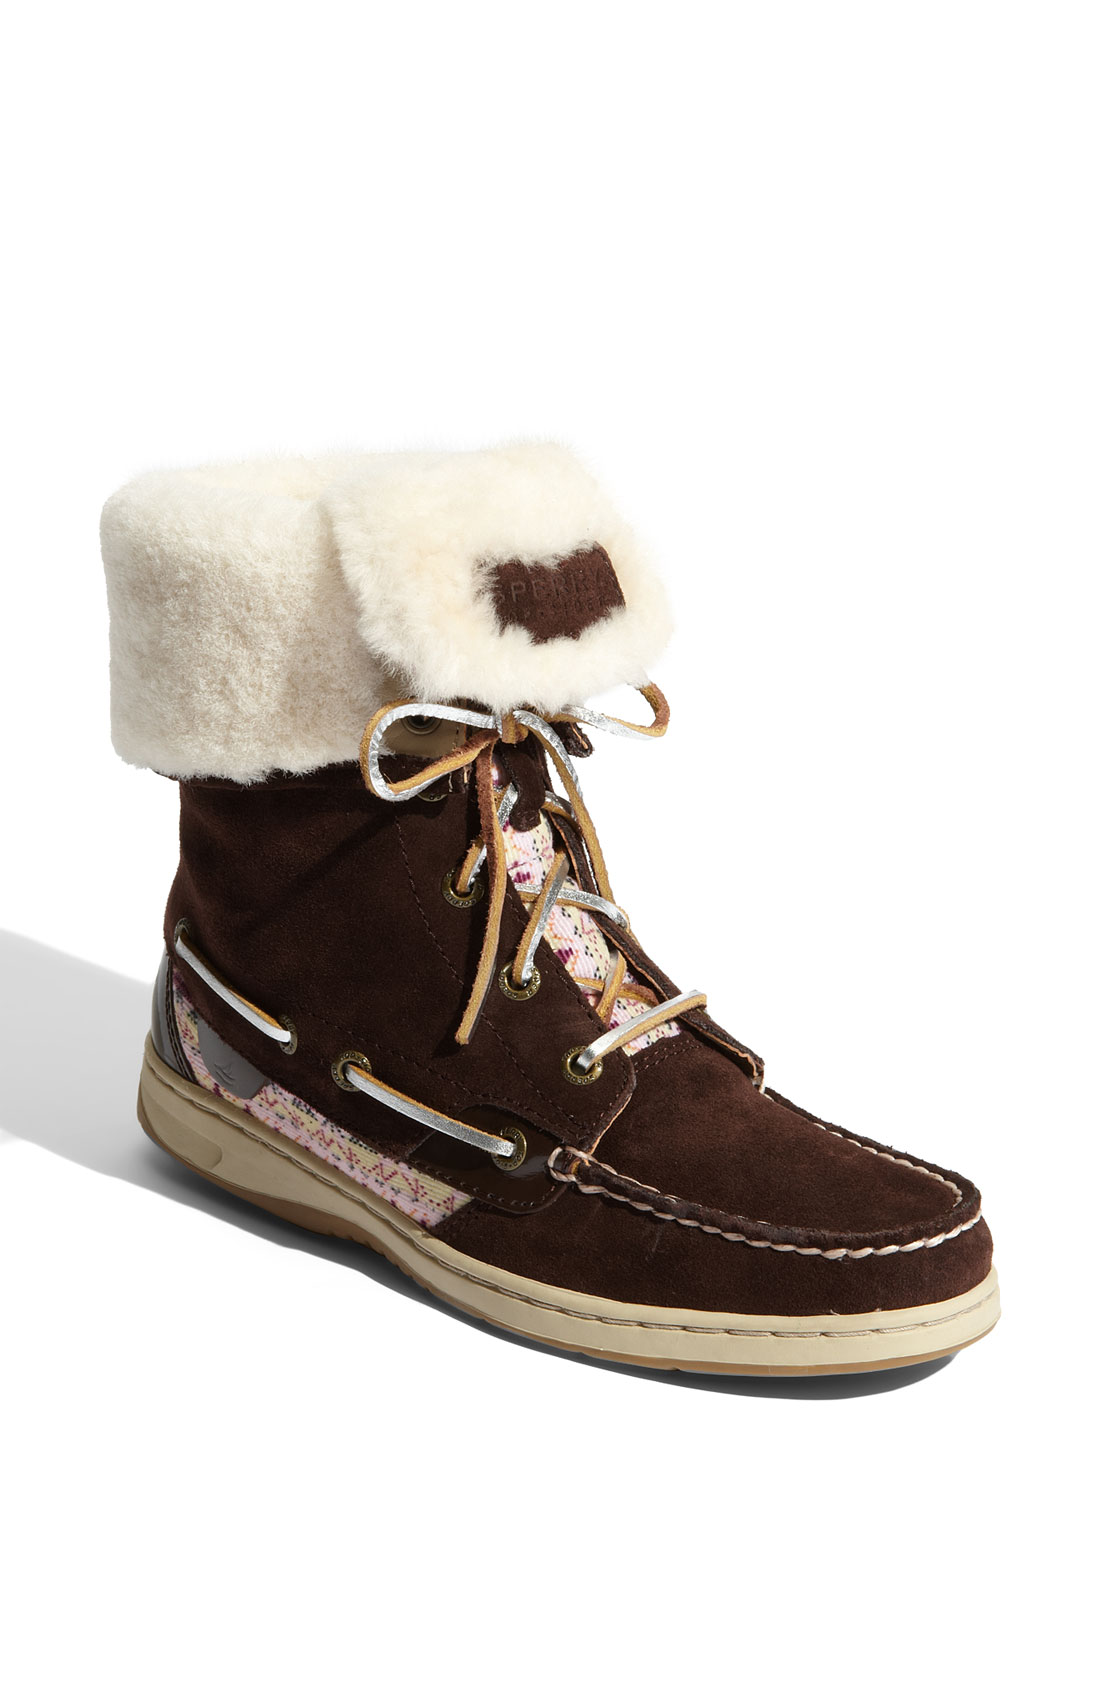 sperry top sider snug harbor shearling lined boot in brown